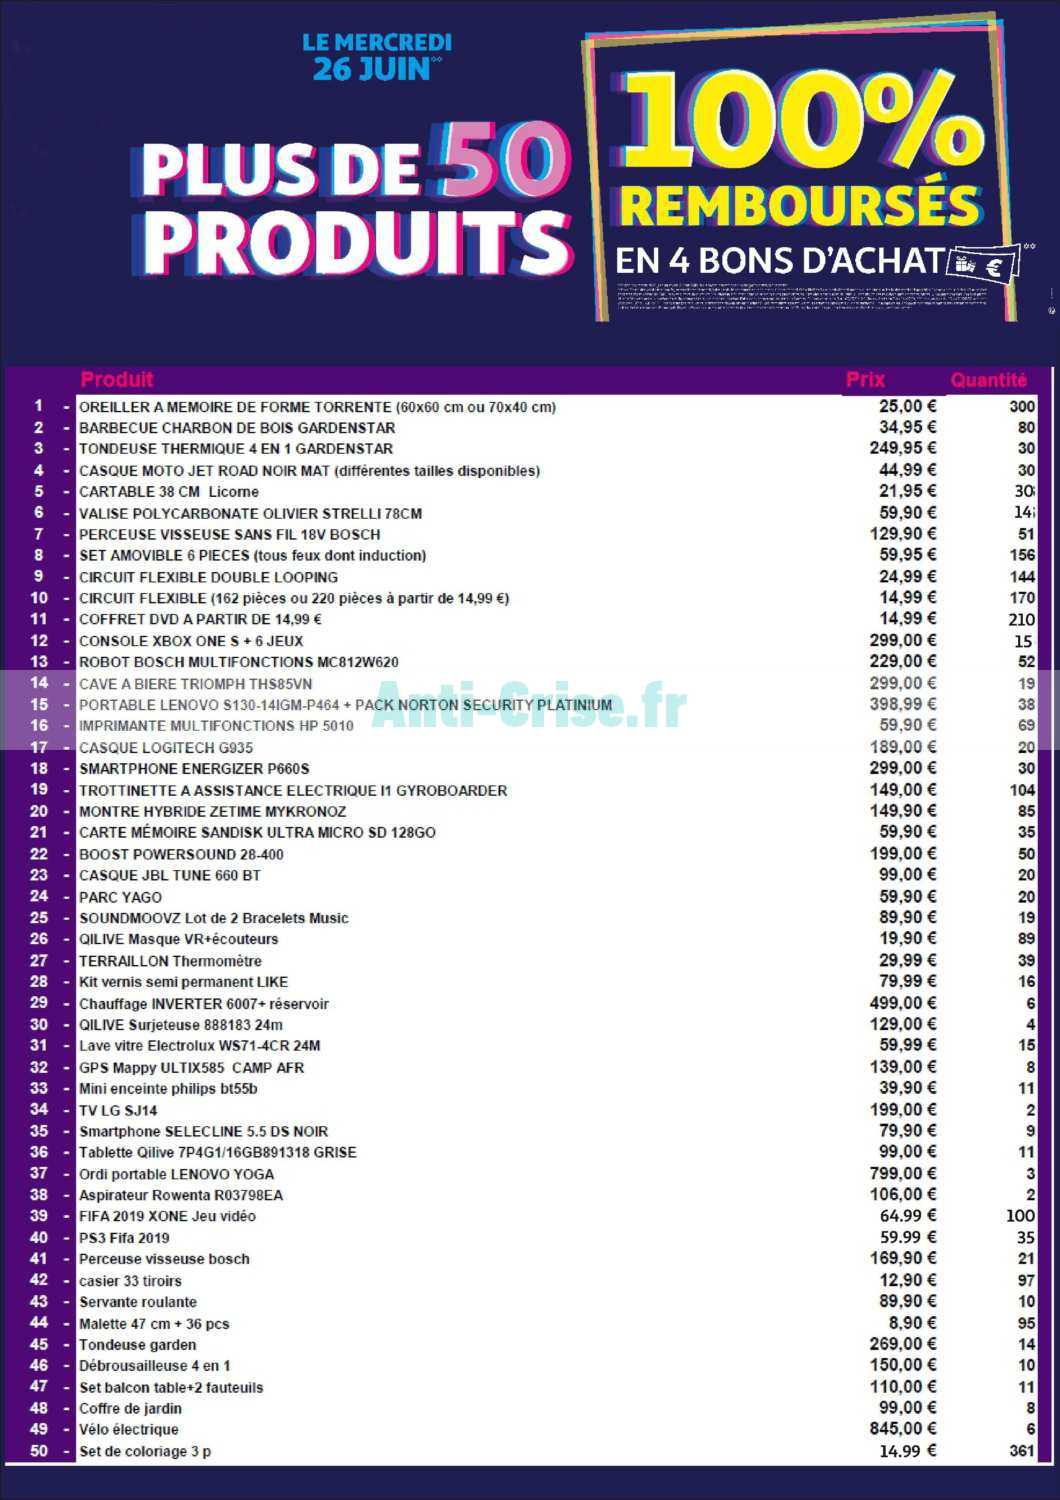 Catalogue Auchan 26 Juin 2019 : catalogue, auchan, AUCHAN, LOCAL, Nouveau, Catalogue, Disponible!, Ratez, Promos, Catalogue.